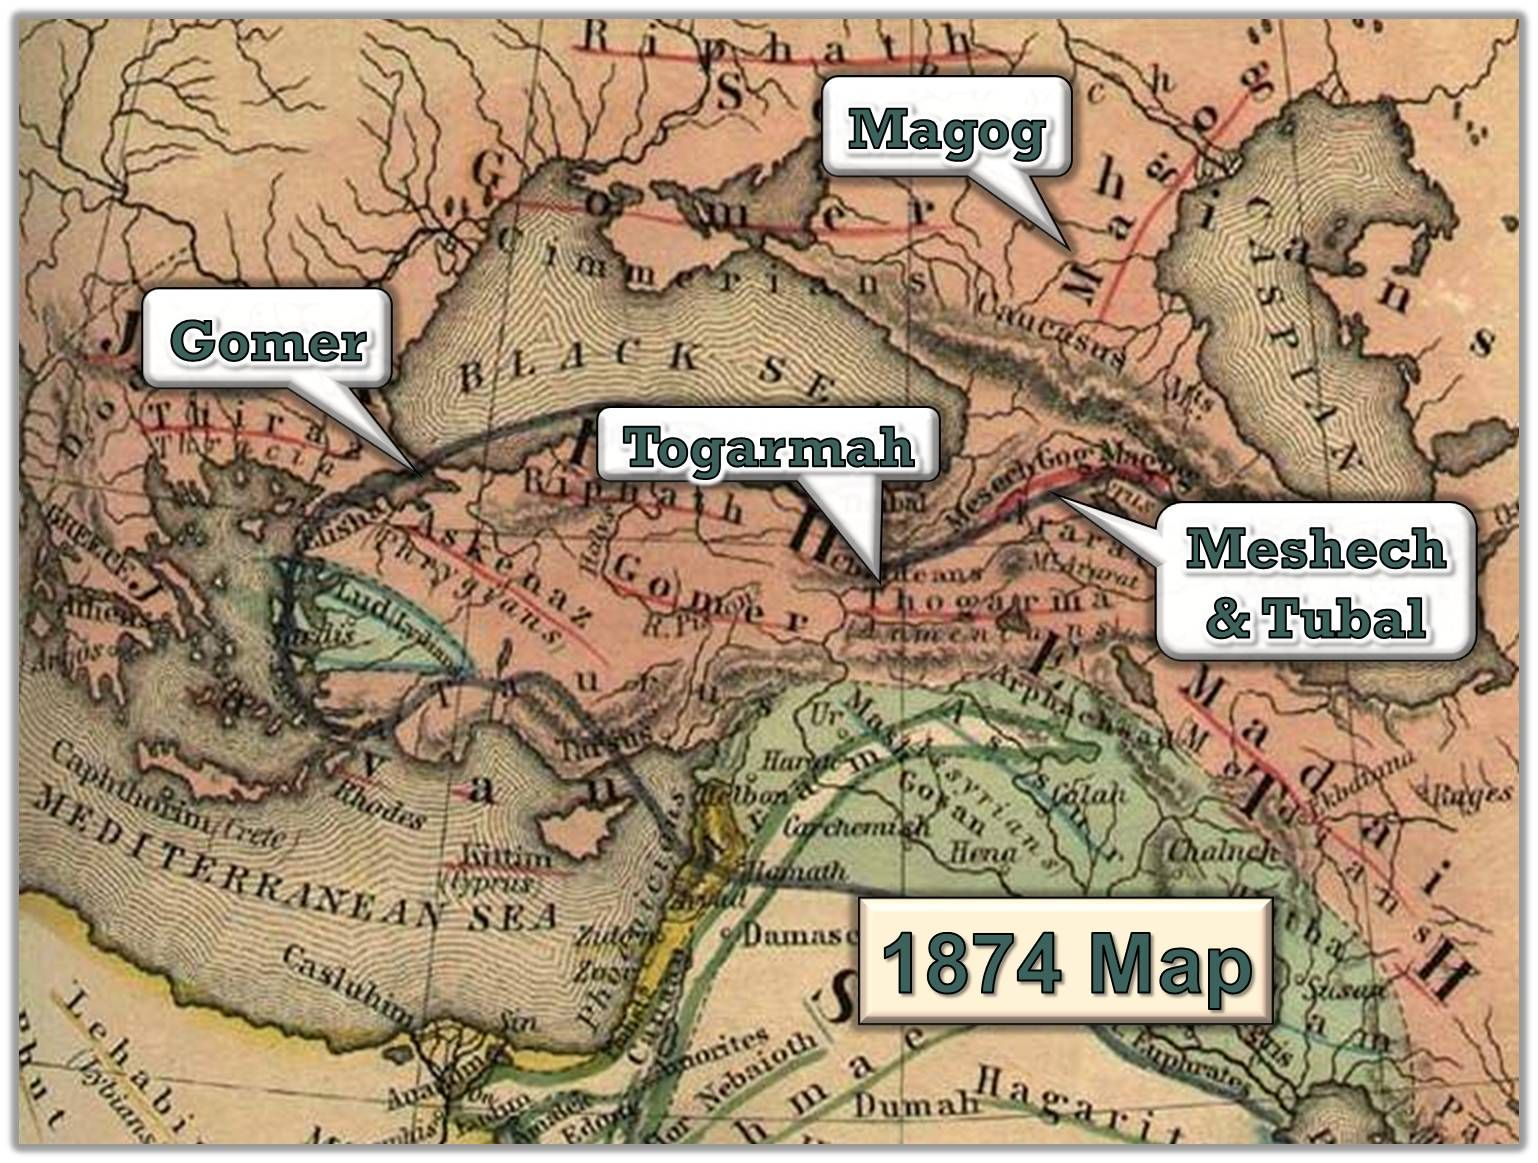 an 1874 map with biblical placenames indicating